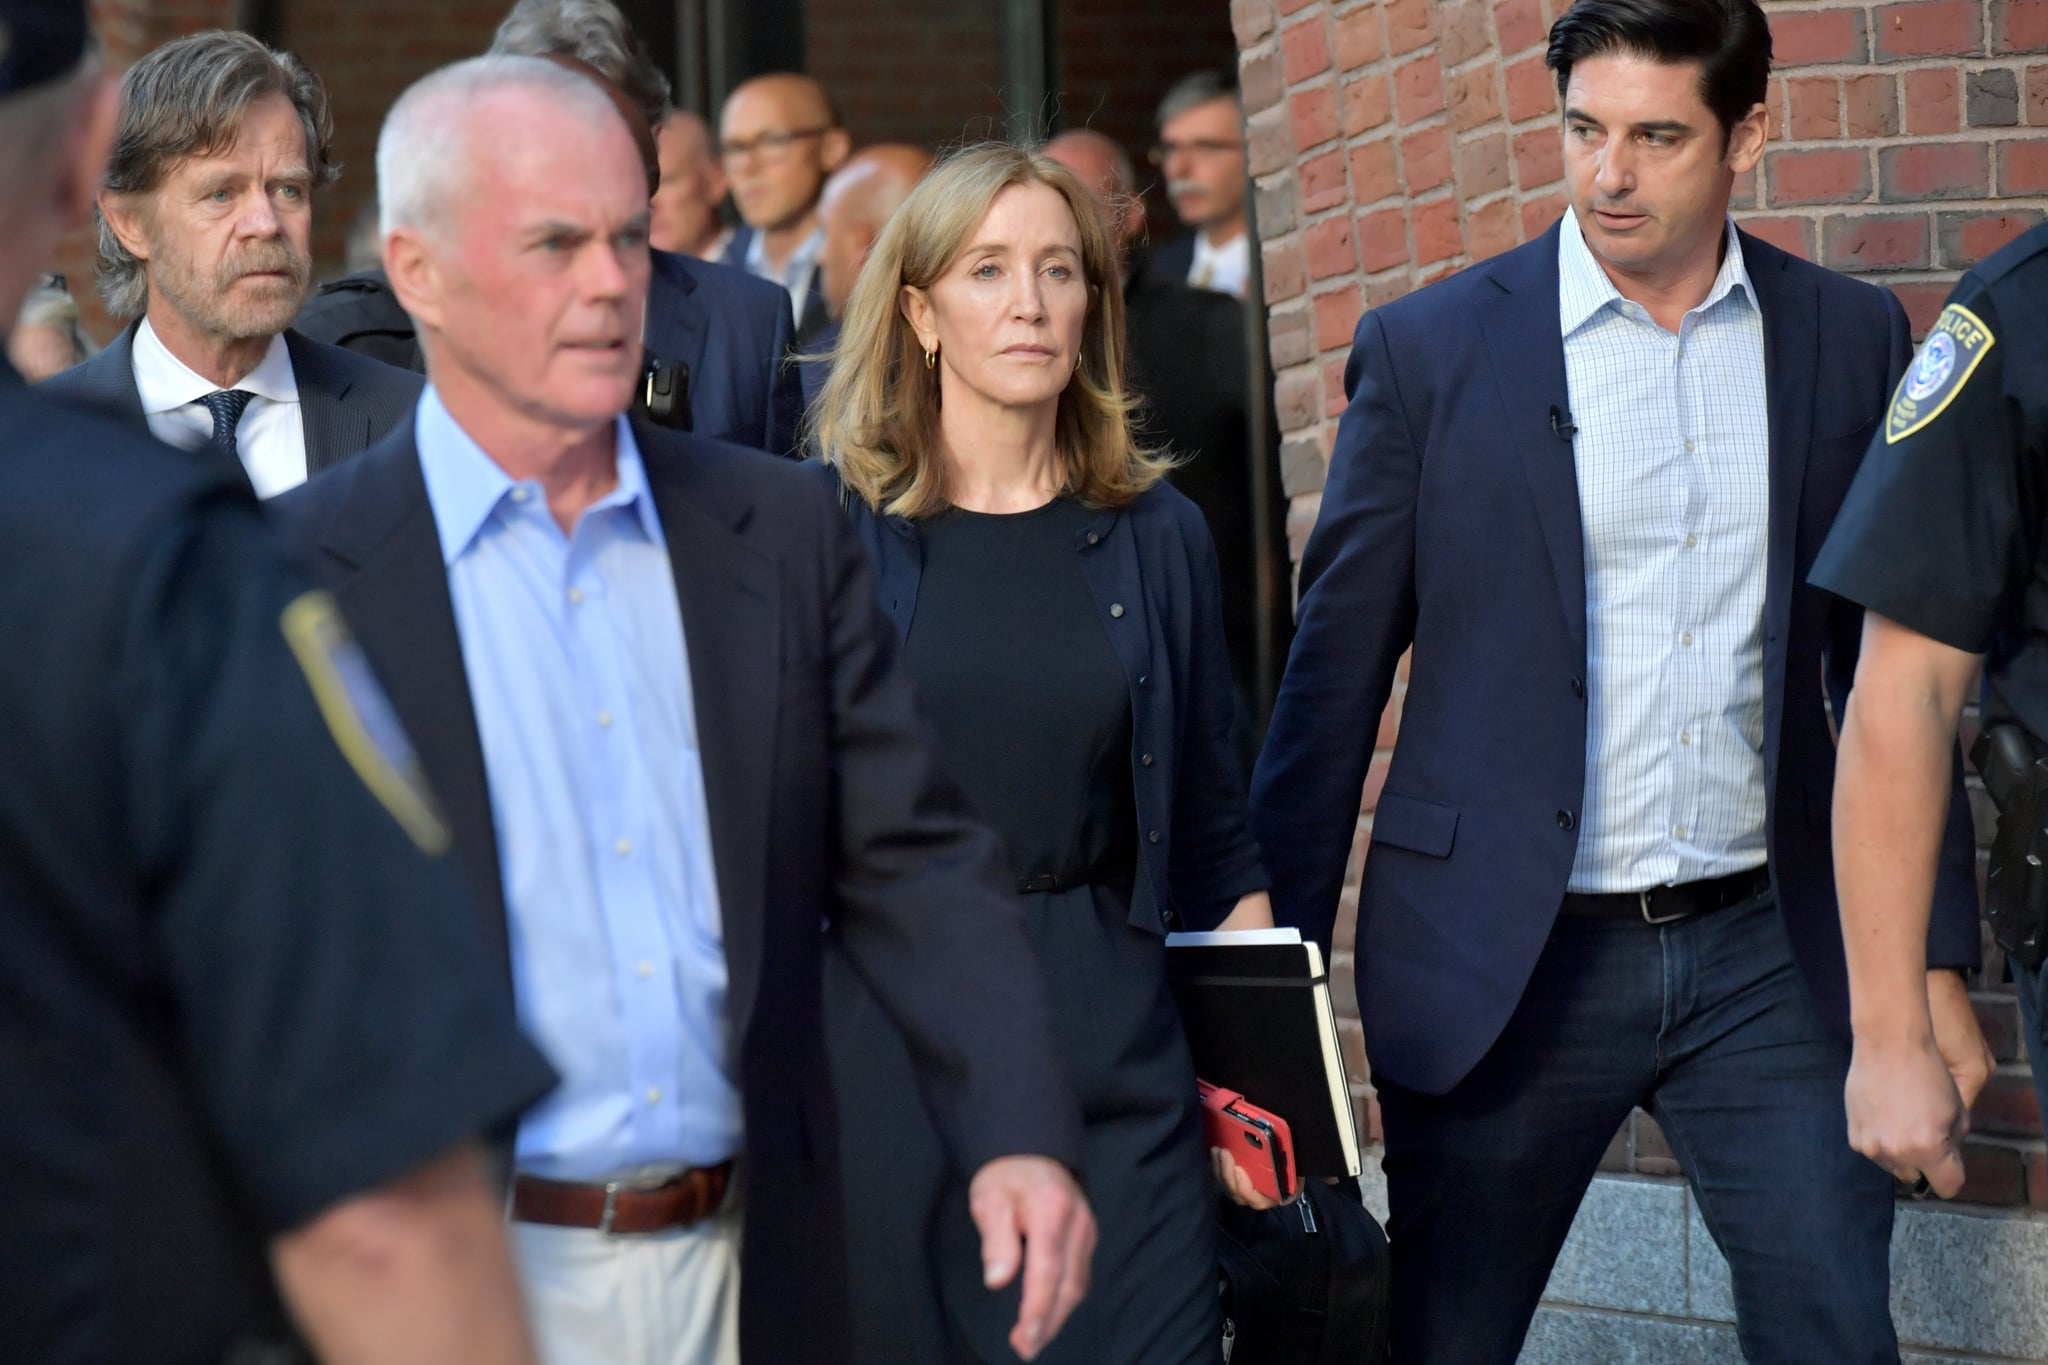 BOSTON, MA - SEPTEMBER 13:  Felicity Huffman and husband William Macy exit John Moakley U.S. Courthouse where Huffman received a 14 day sentence for her role in the college admissions scandal on September 13, 2019 in Boston, Massachusetts.  (Photo by Paul Marotta/Getty Images)